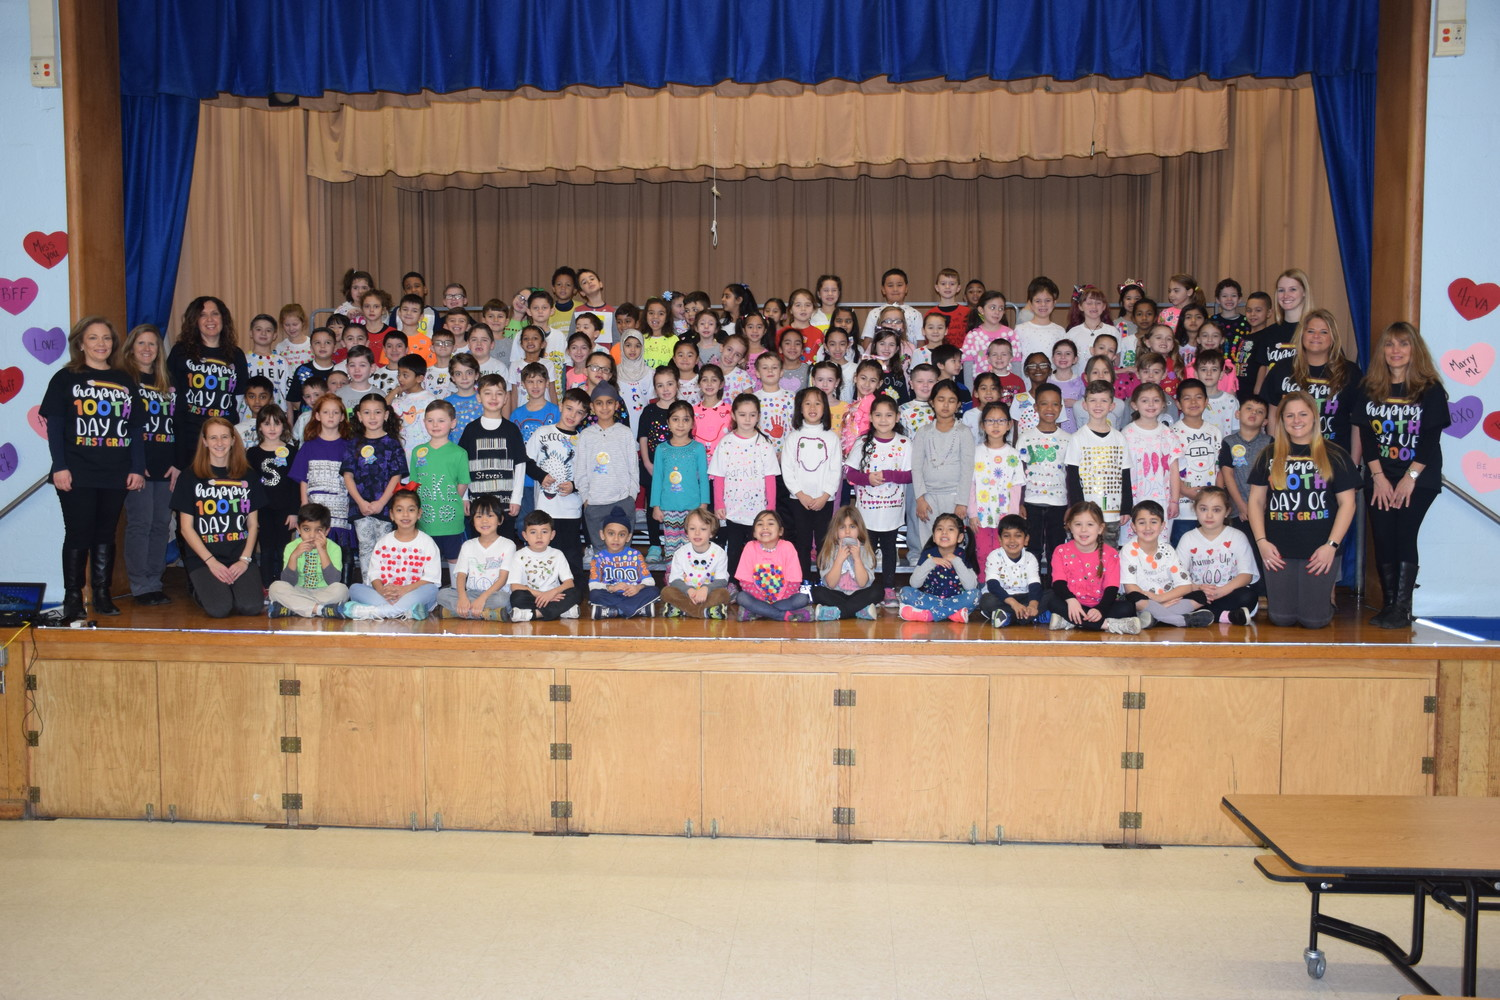 Bowling Green Elementary School first-graders commemorated the 100th day of school by sporting T-shirts bedecked with 100 various items.